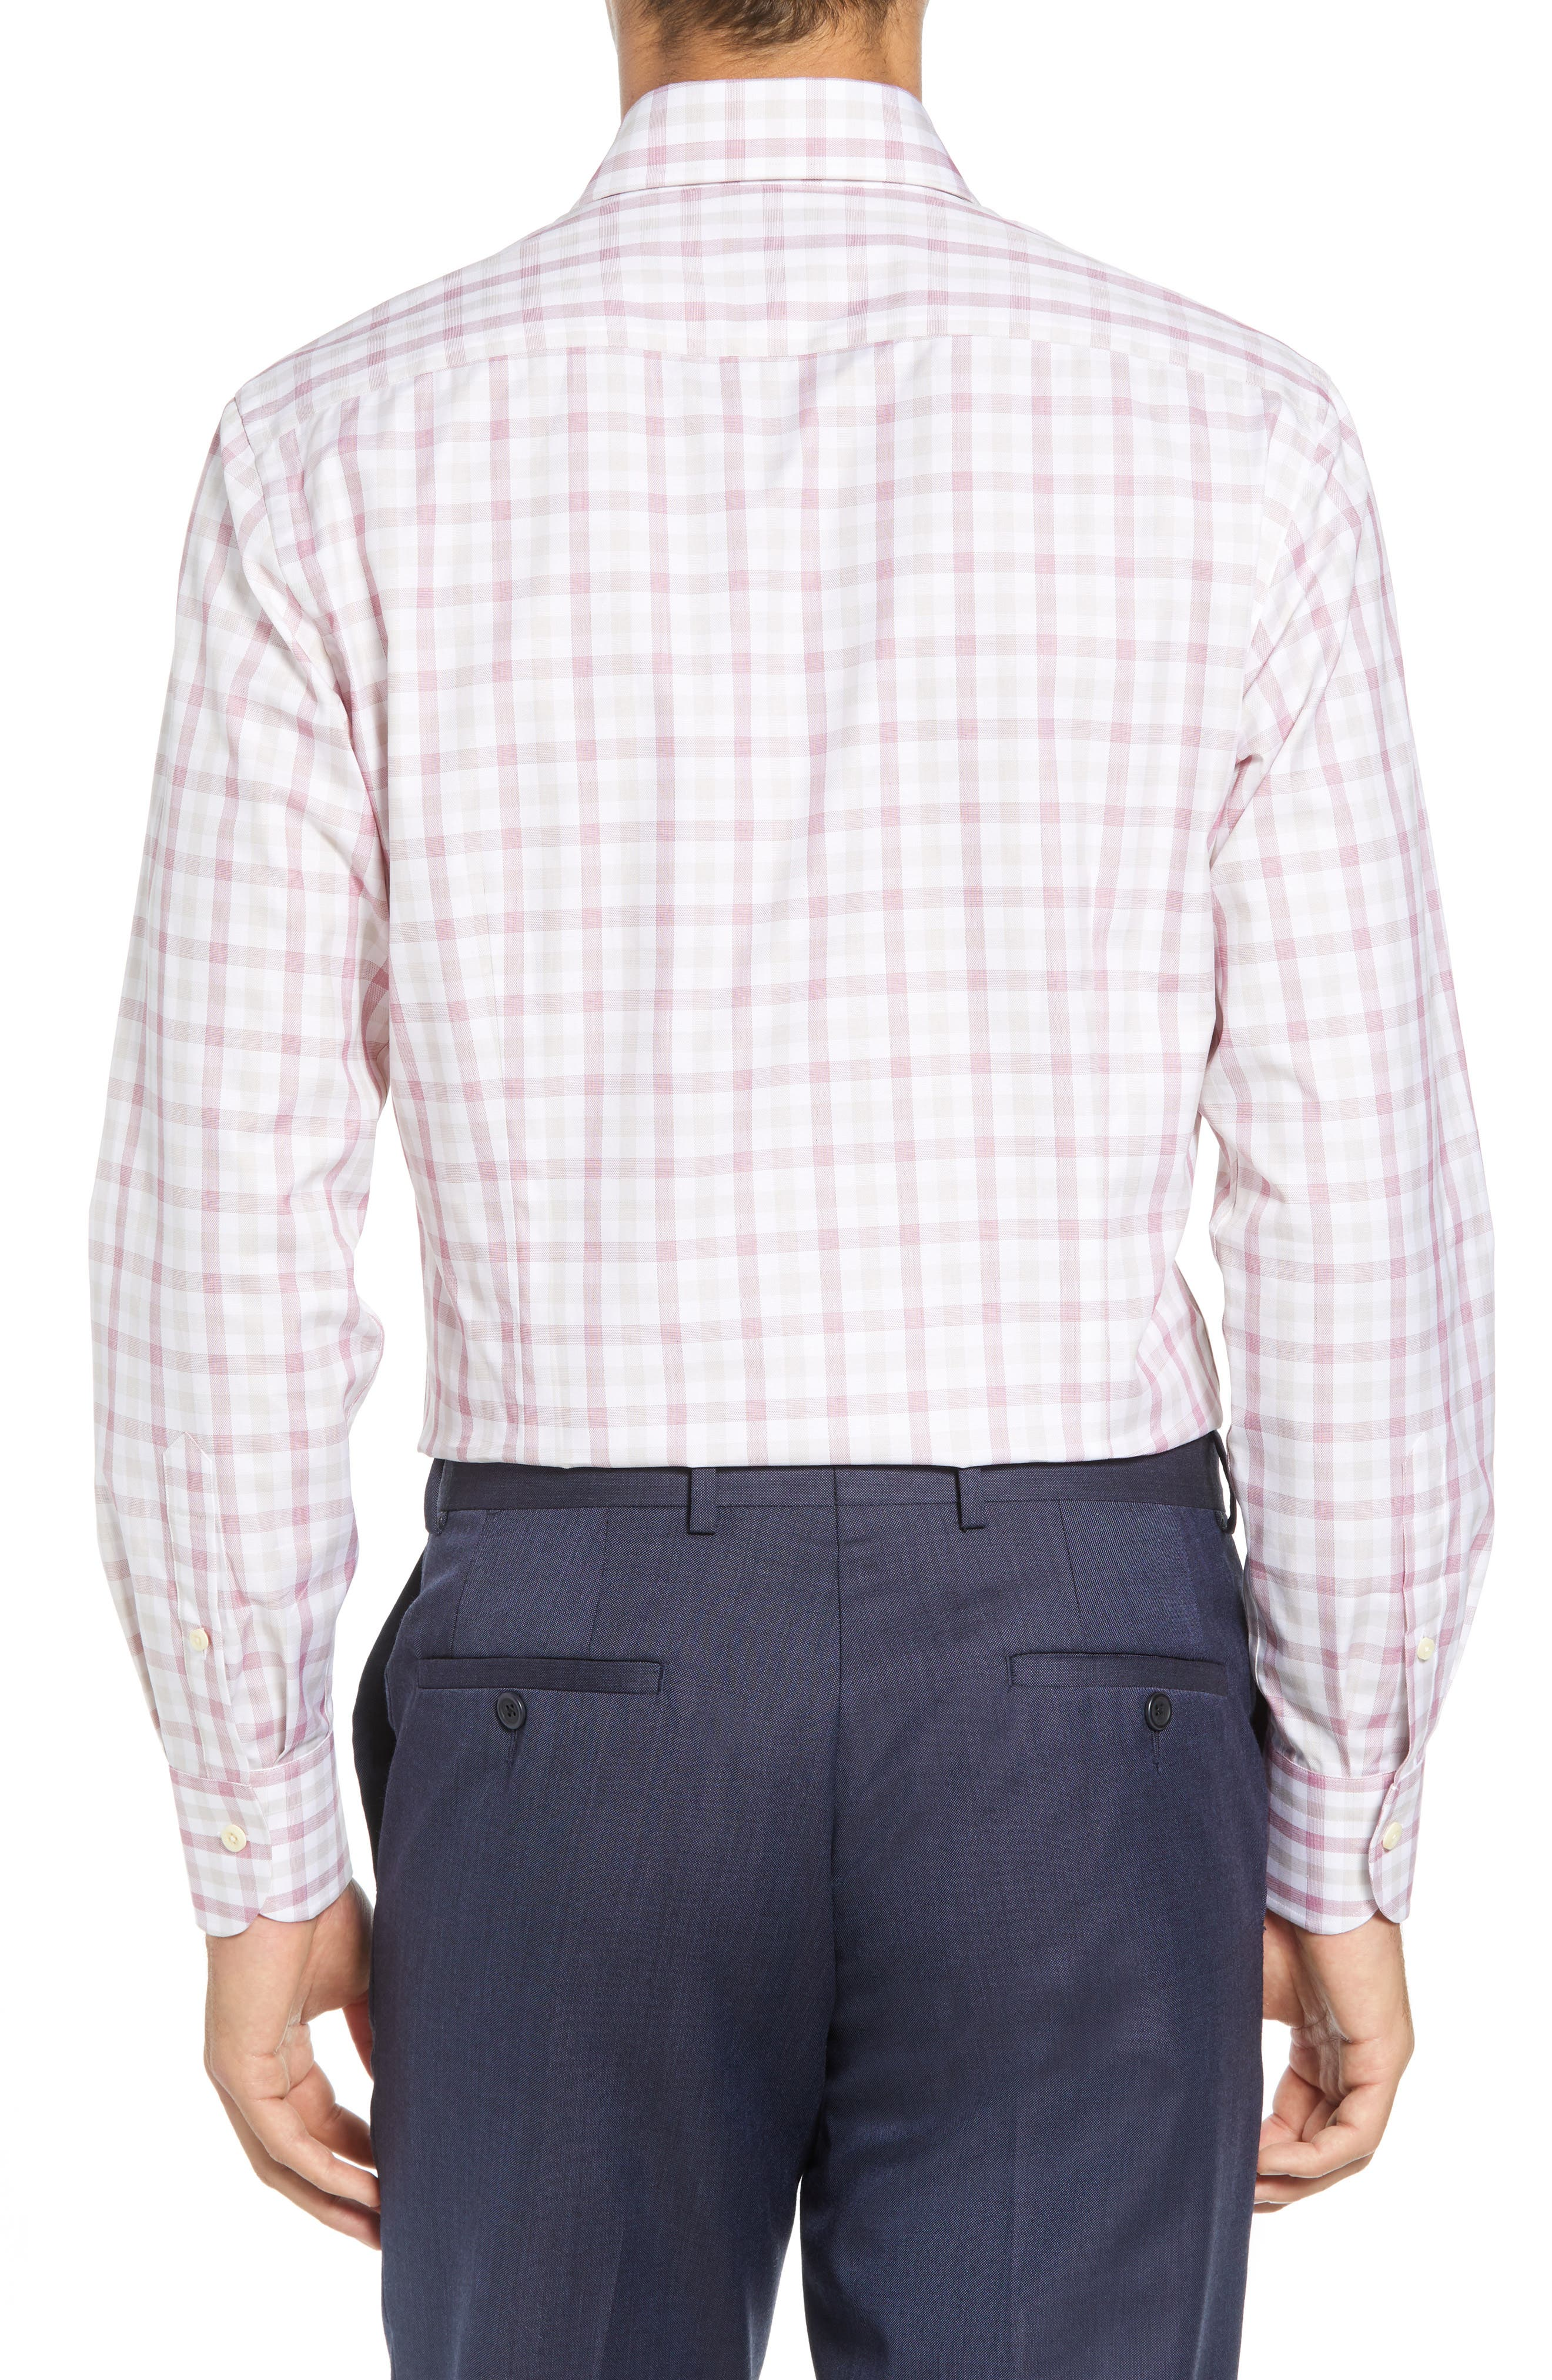 Corbly Trim Fit Check Dress Shirt,                             Alternate thumbnail 3, color,                             RED